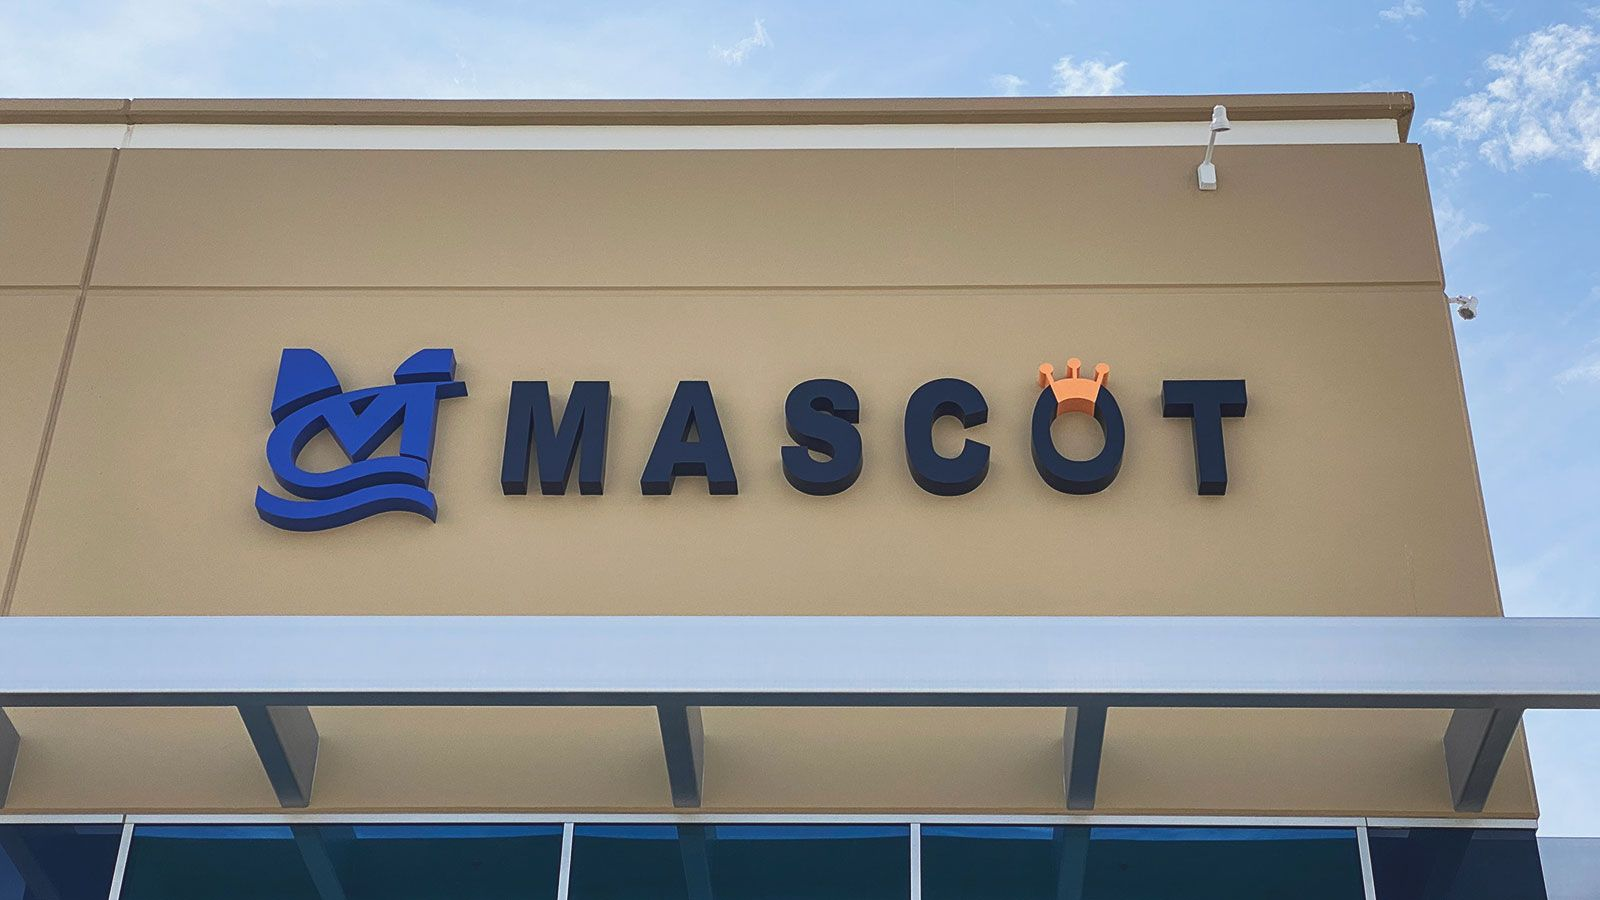 Mascot outdoor 3D letters